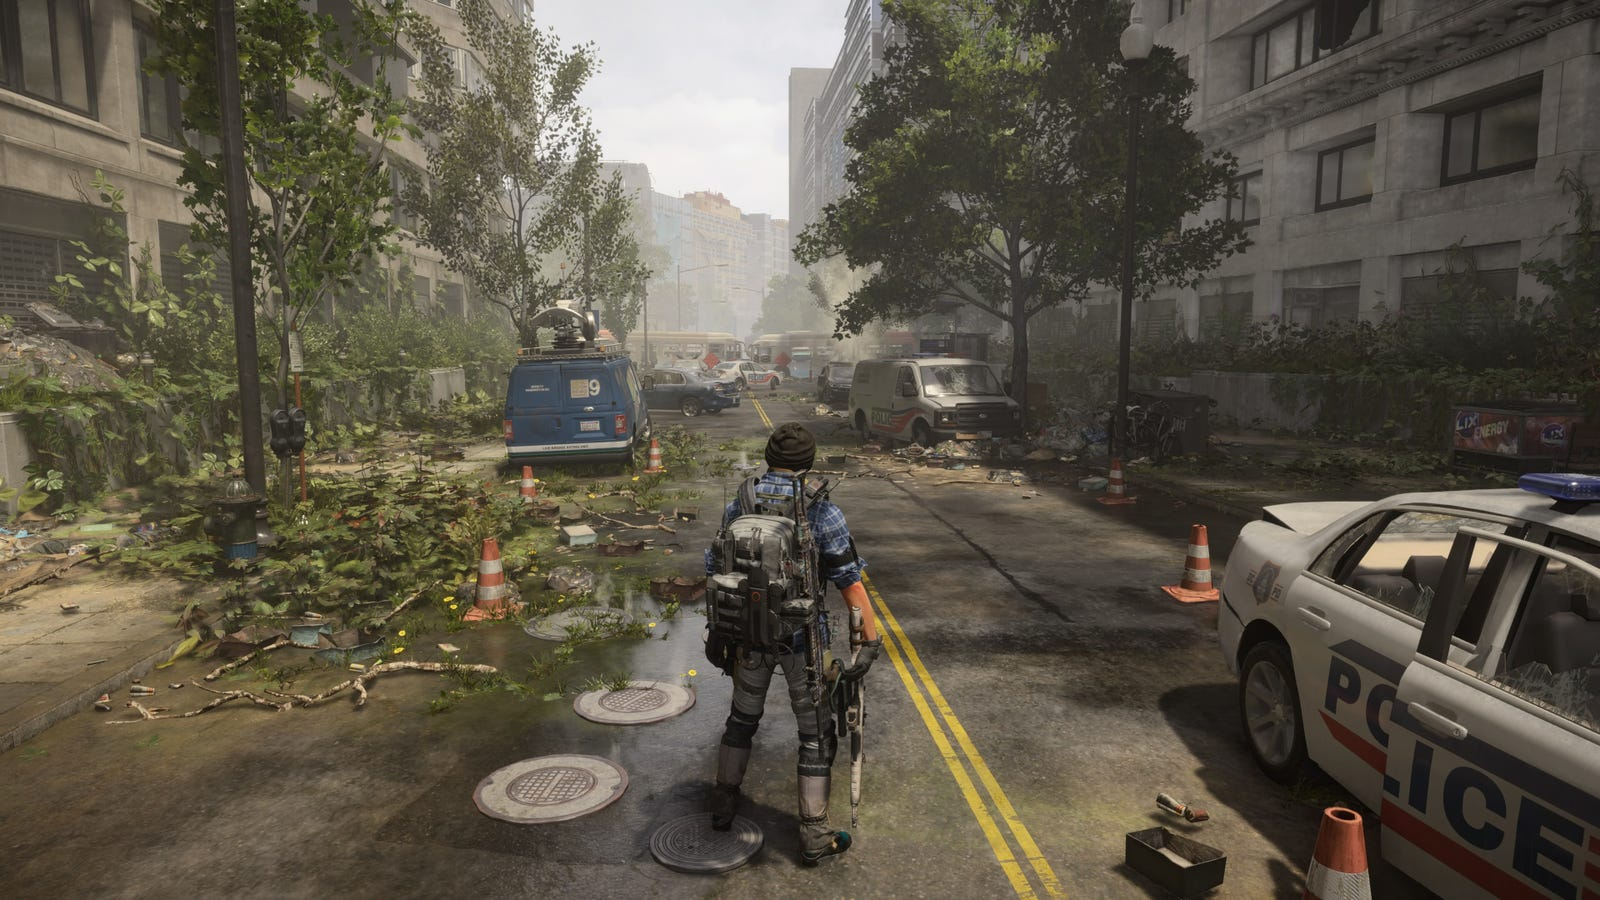 The Division 2's DC may be the most densely detailed game world every created, demonstrating the franchise artists' sensational knack for rendering amazing buildings and beautiful piles of junk.